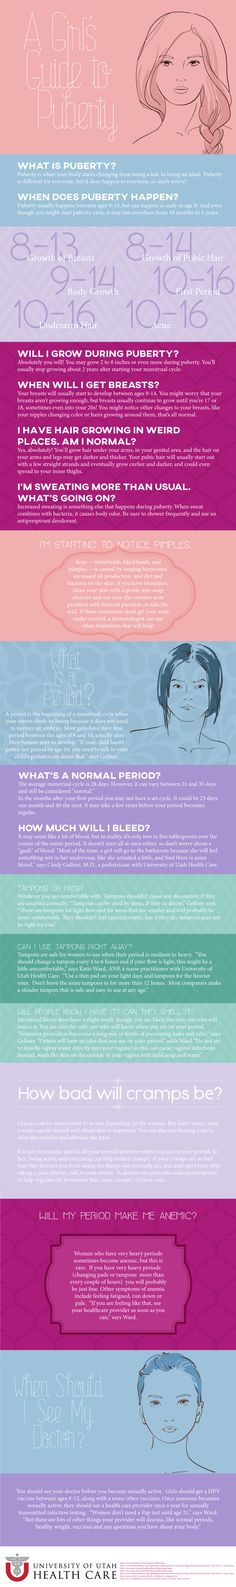 Puberty can be difficult for girls. Here are answers to some of the difficult questions.